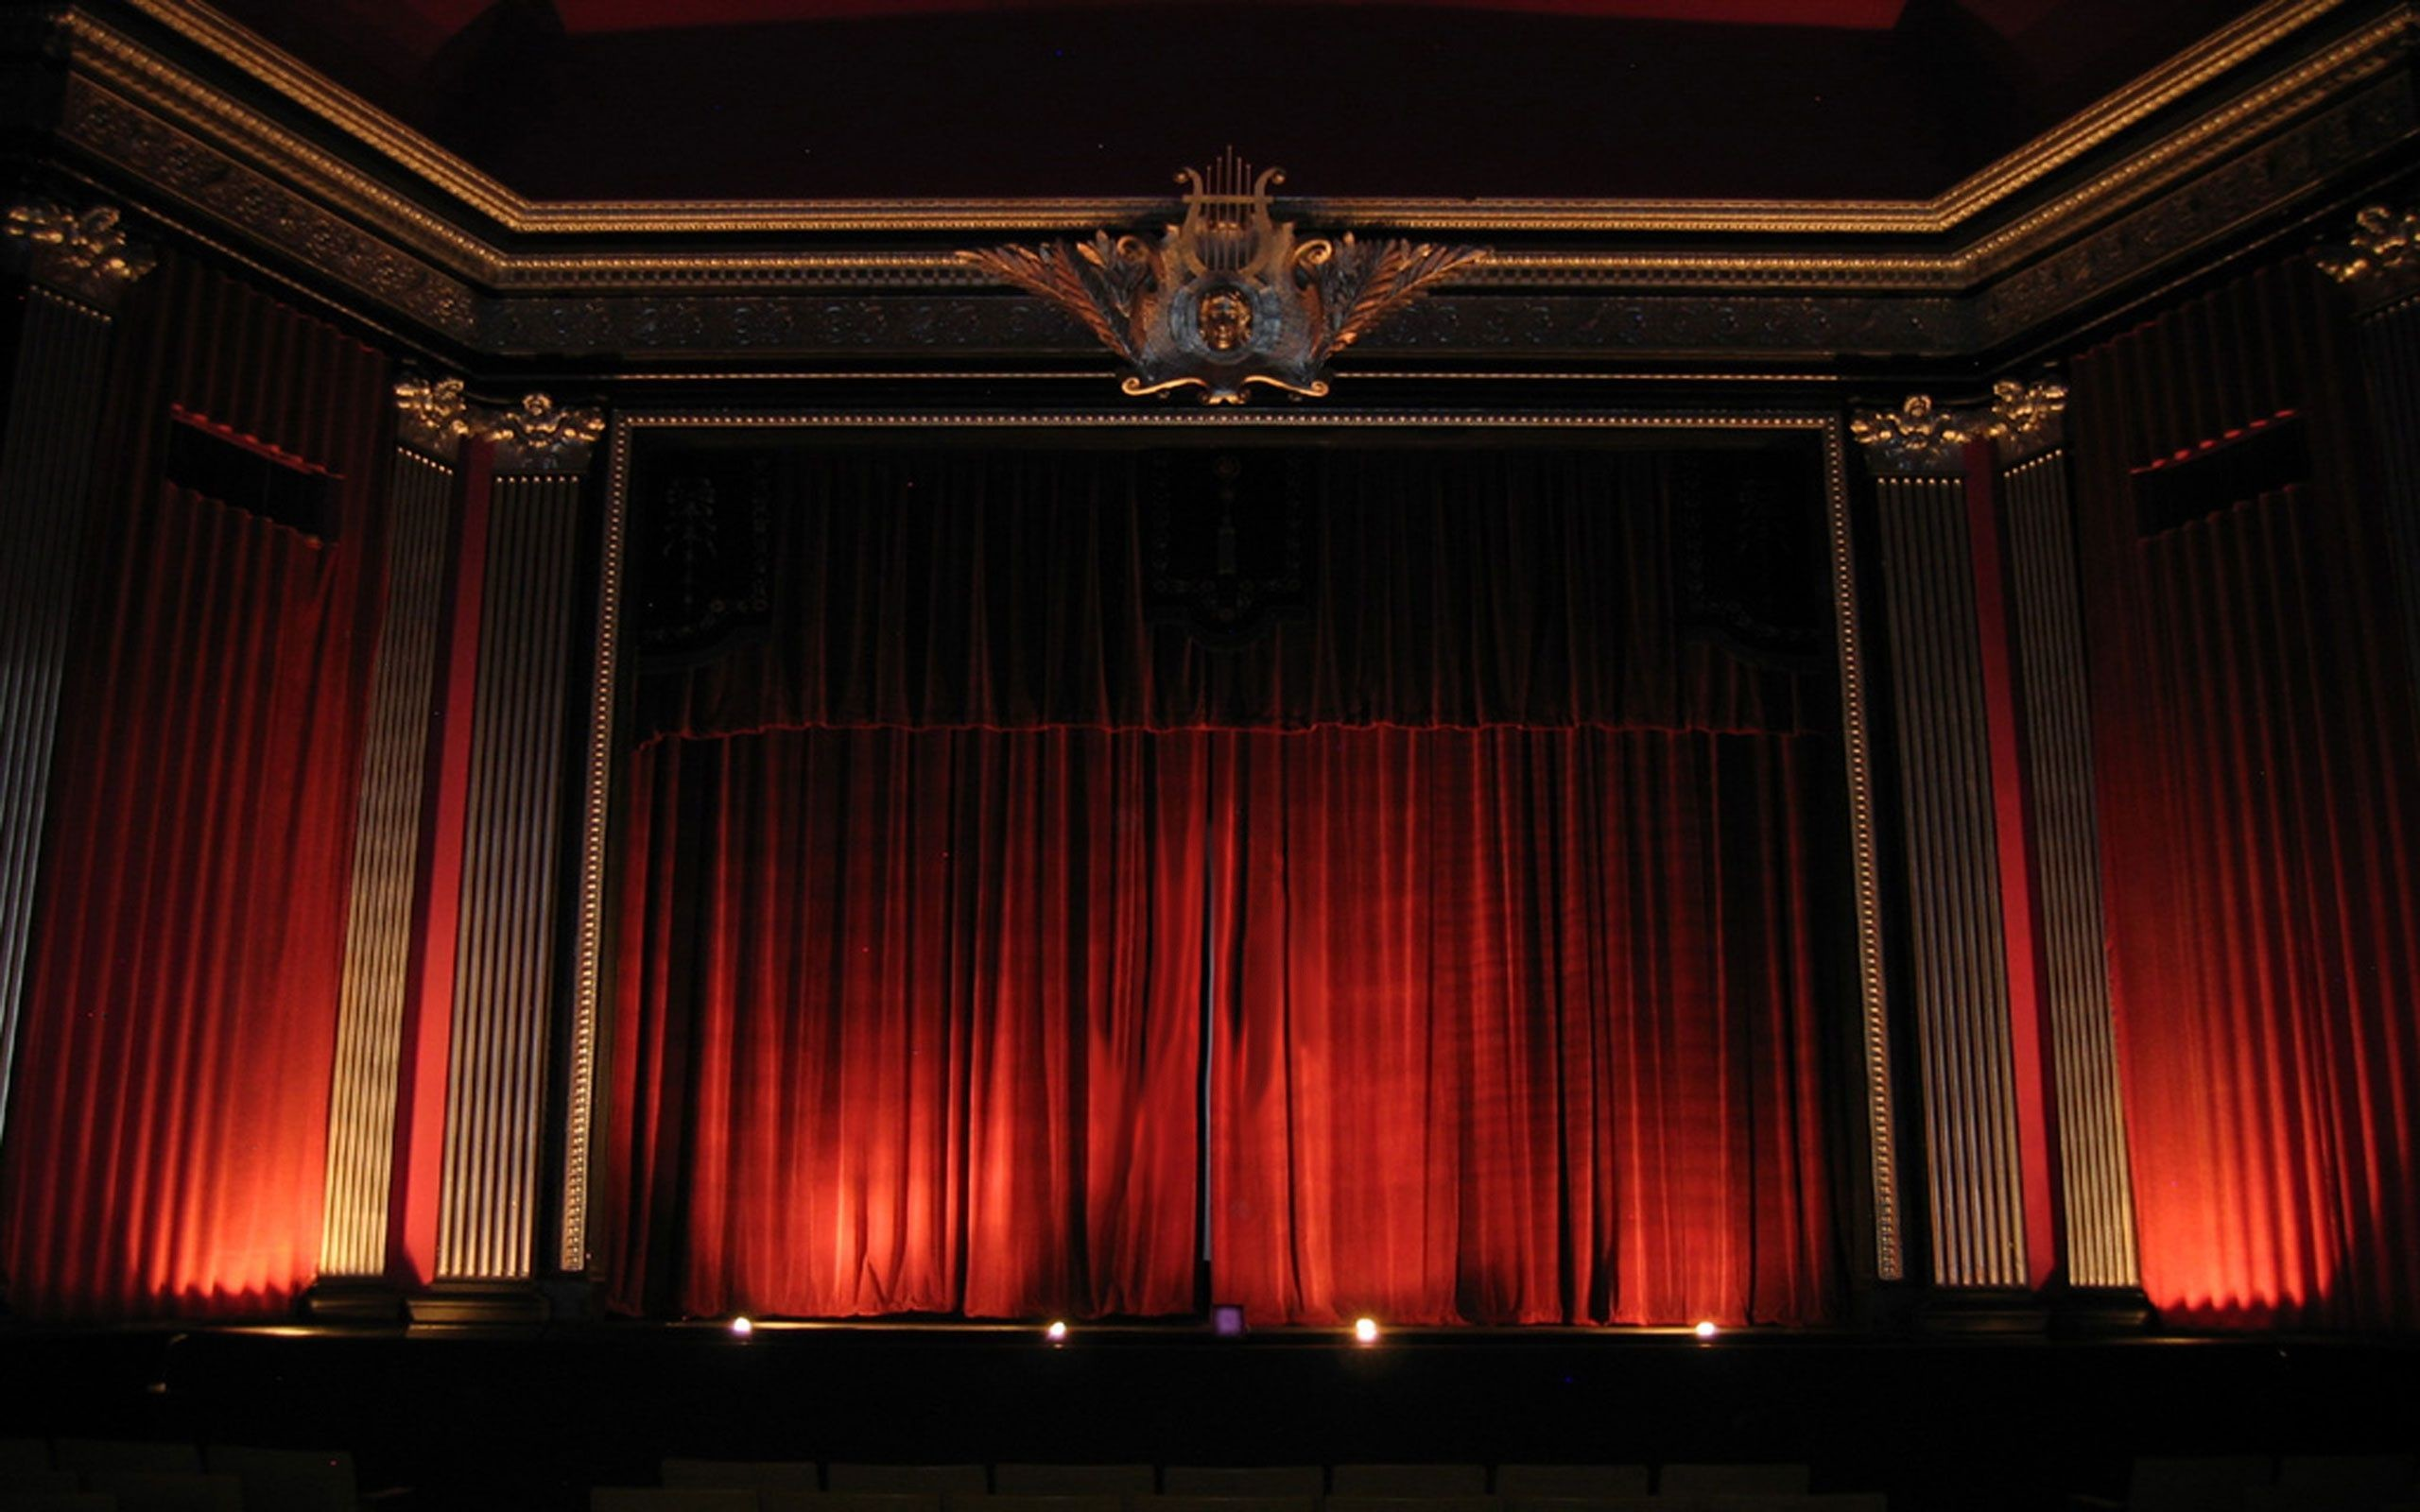 Res: 2560x1600, Free Download Theater Red Curtains Wallpaper And Photo